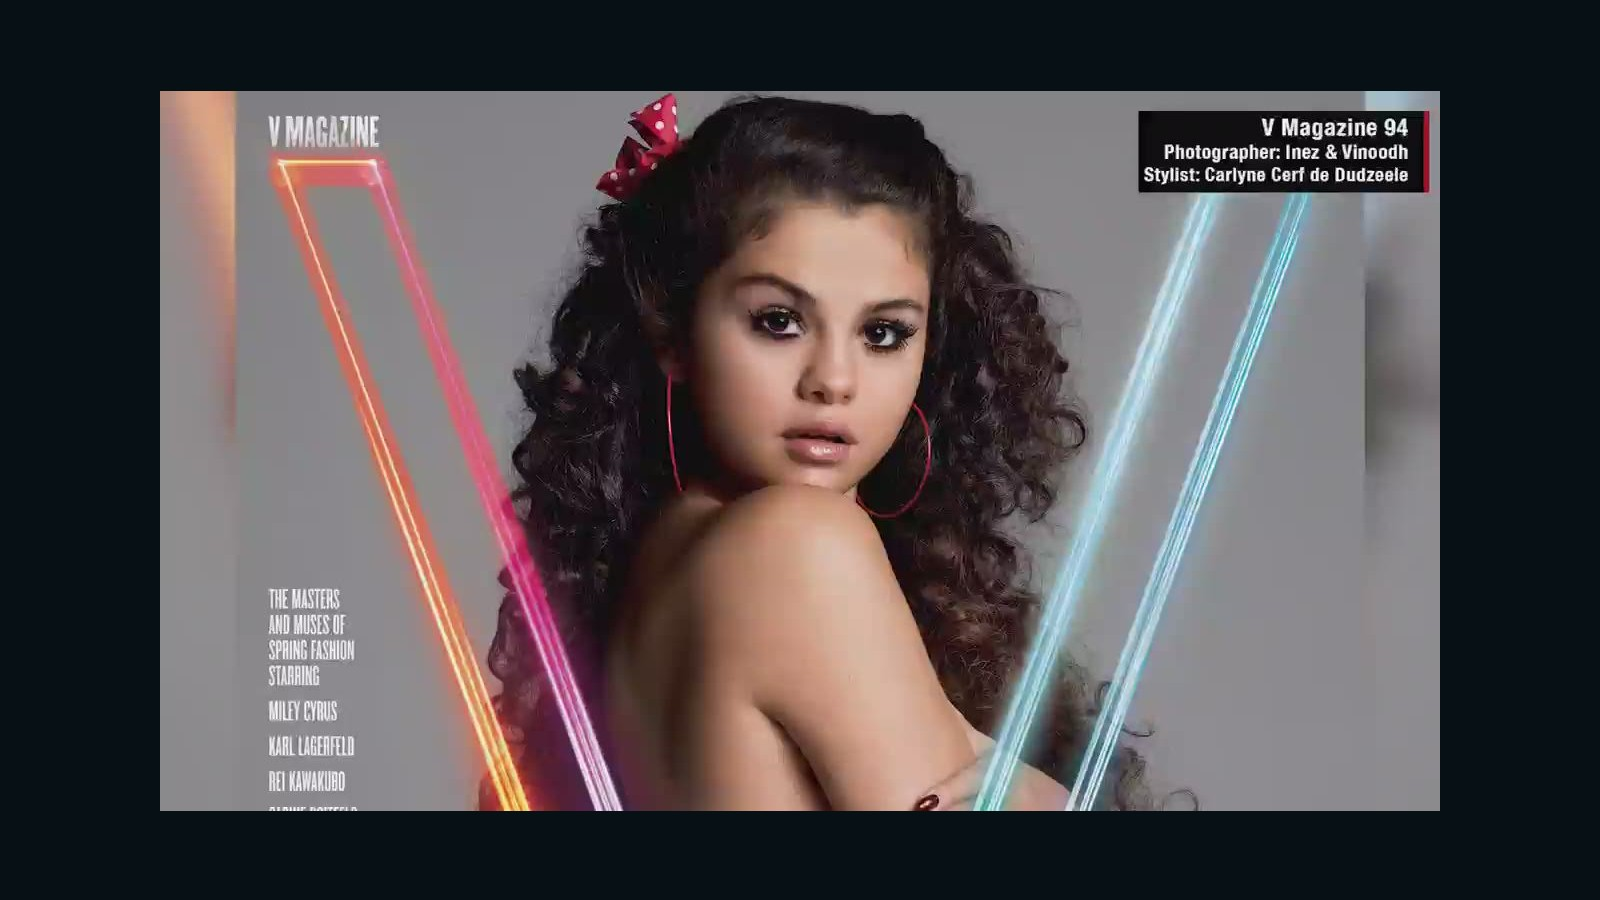 Selena Gomez Naked Text Picture - Porno Look-3233